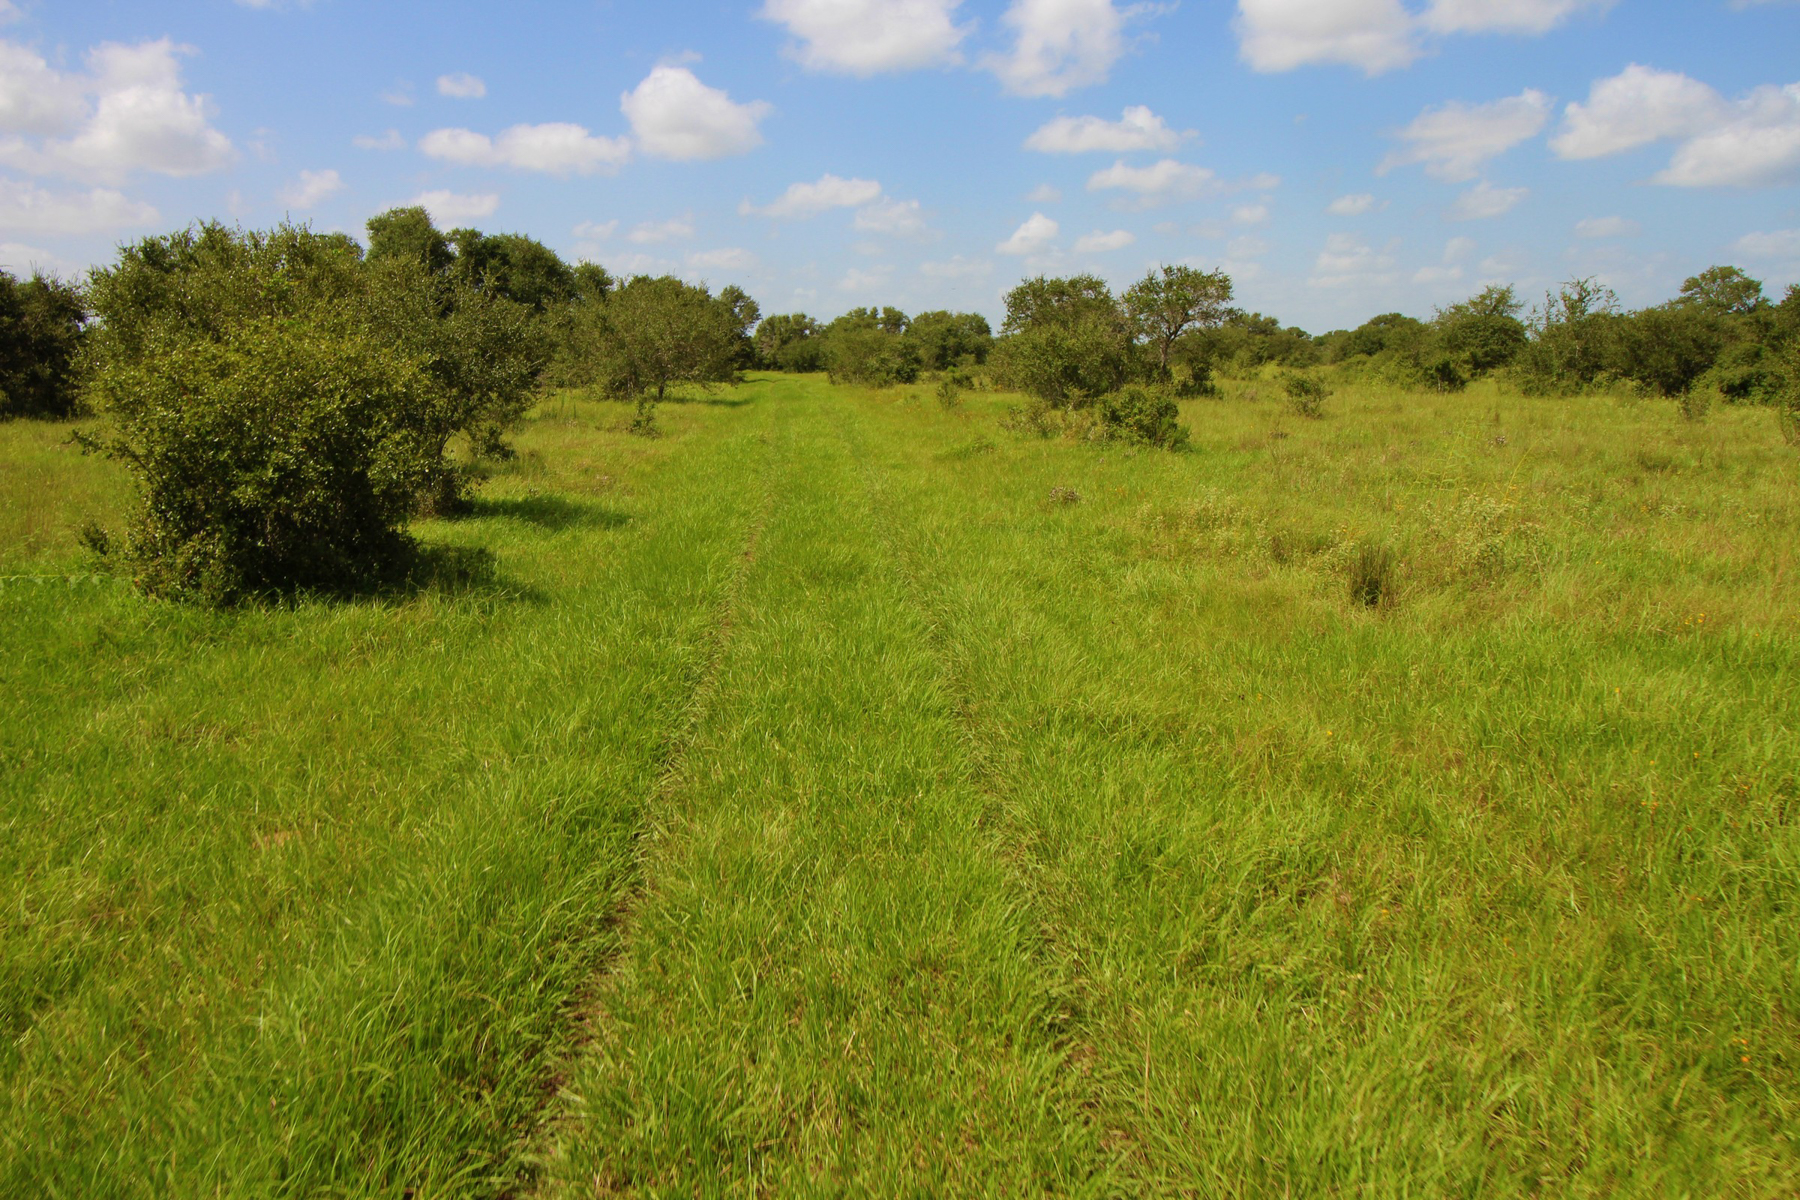 Additional photo for property listing at 894+/- Acrew Tri-County Ranch 894+/- AC / Tri-County Ranch ou Victoria, Texas 77901 Estados Unidos